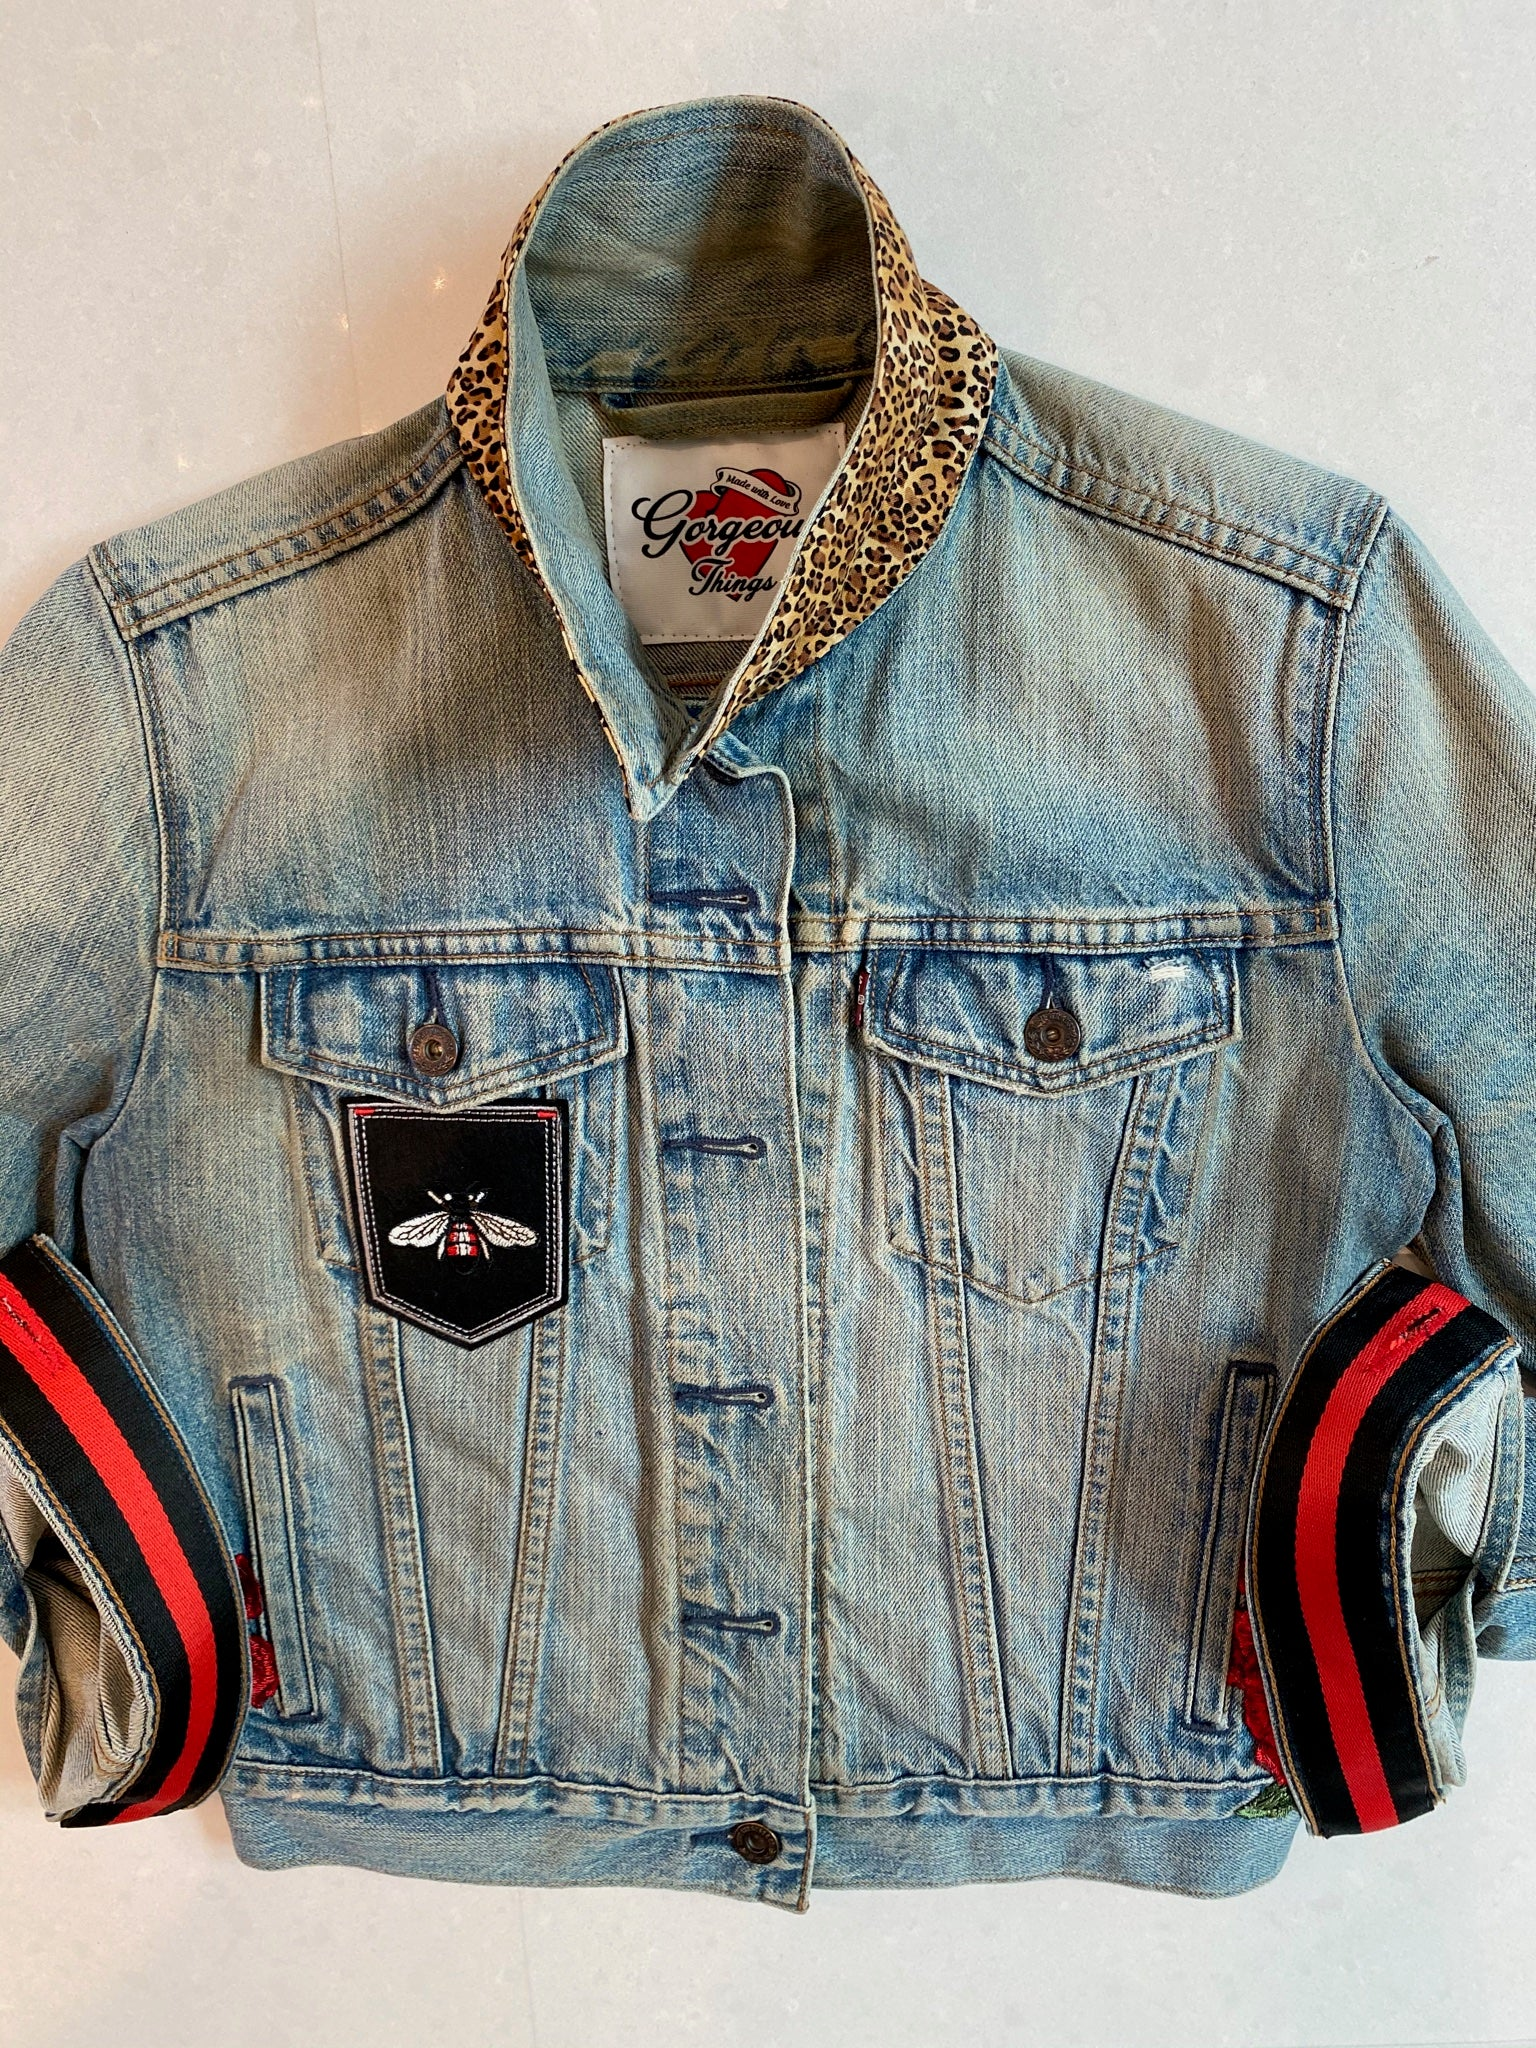 Blessed Leopard Vintage Denim